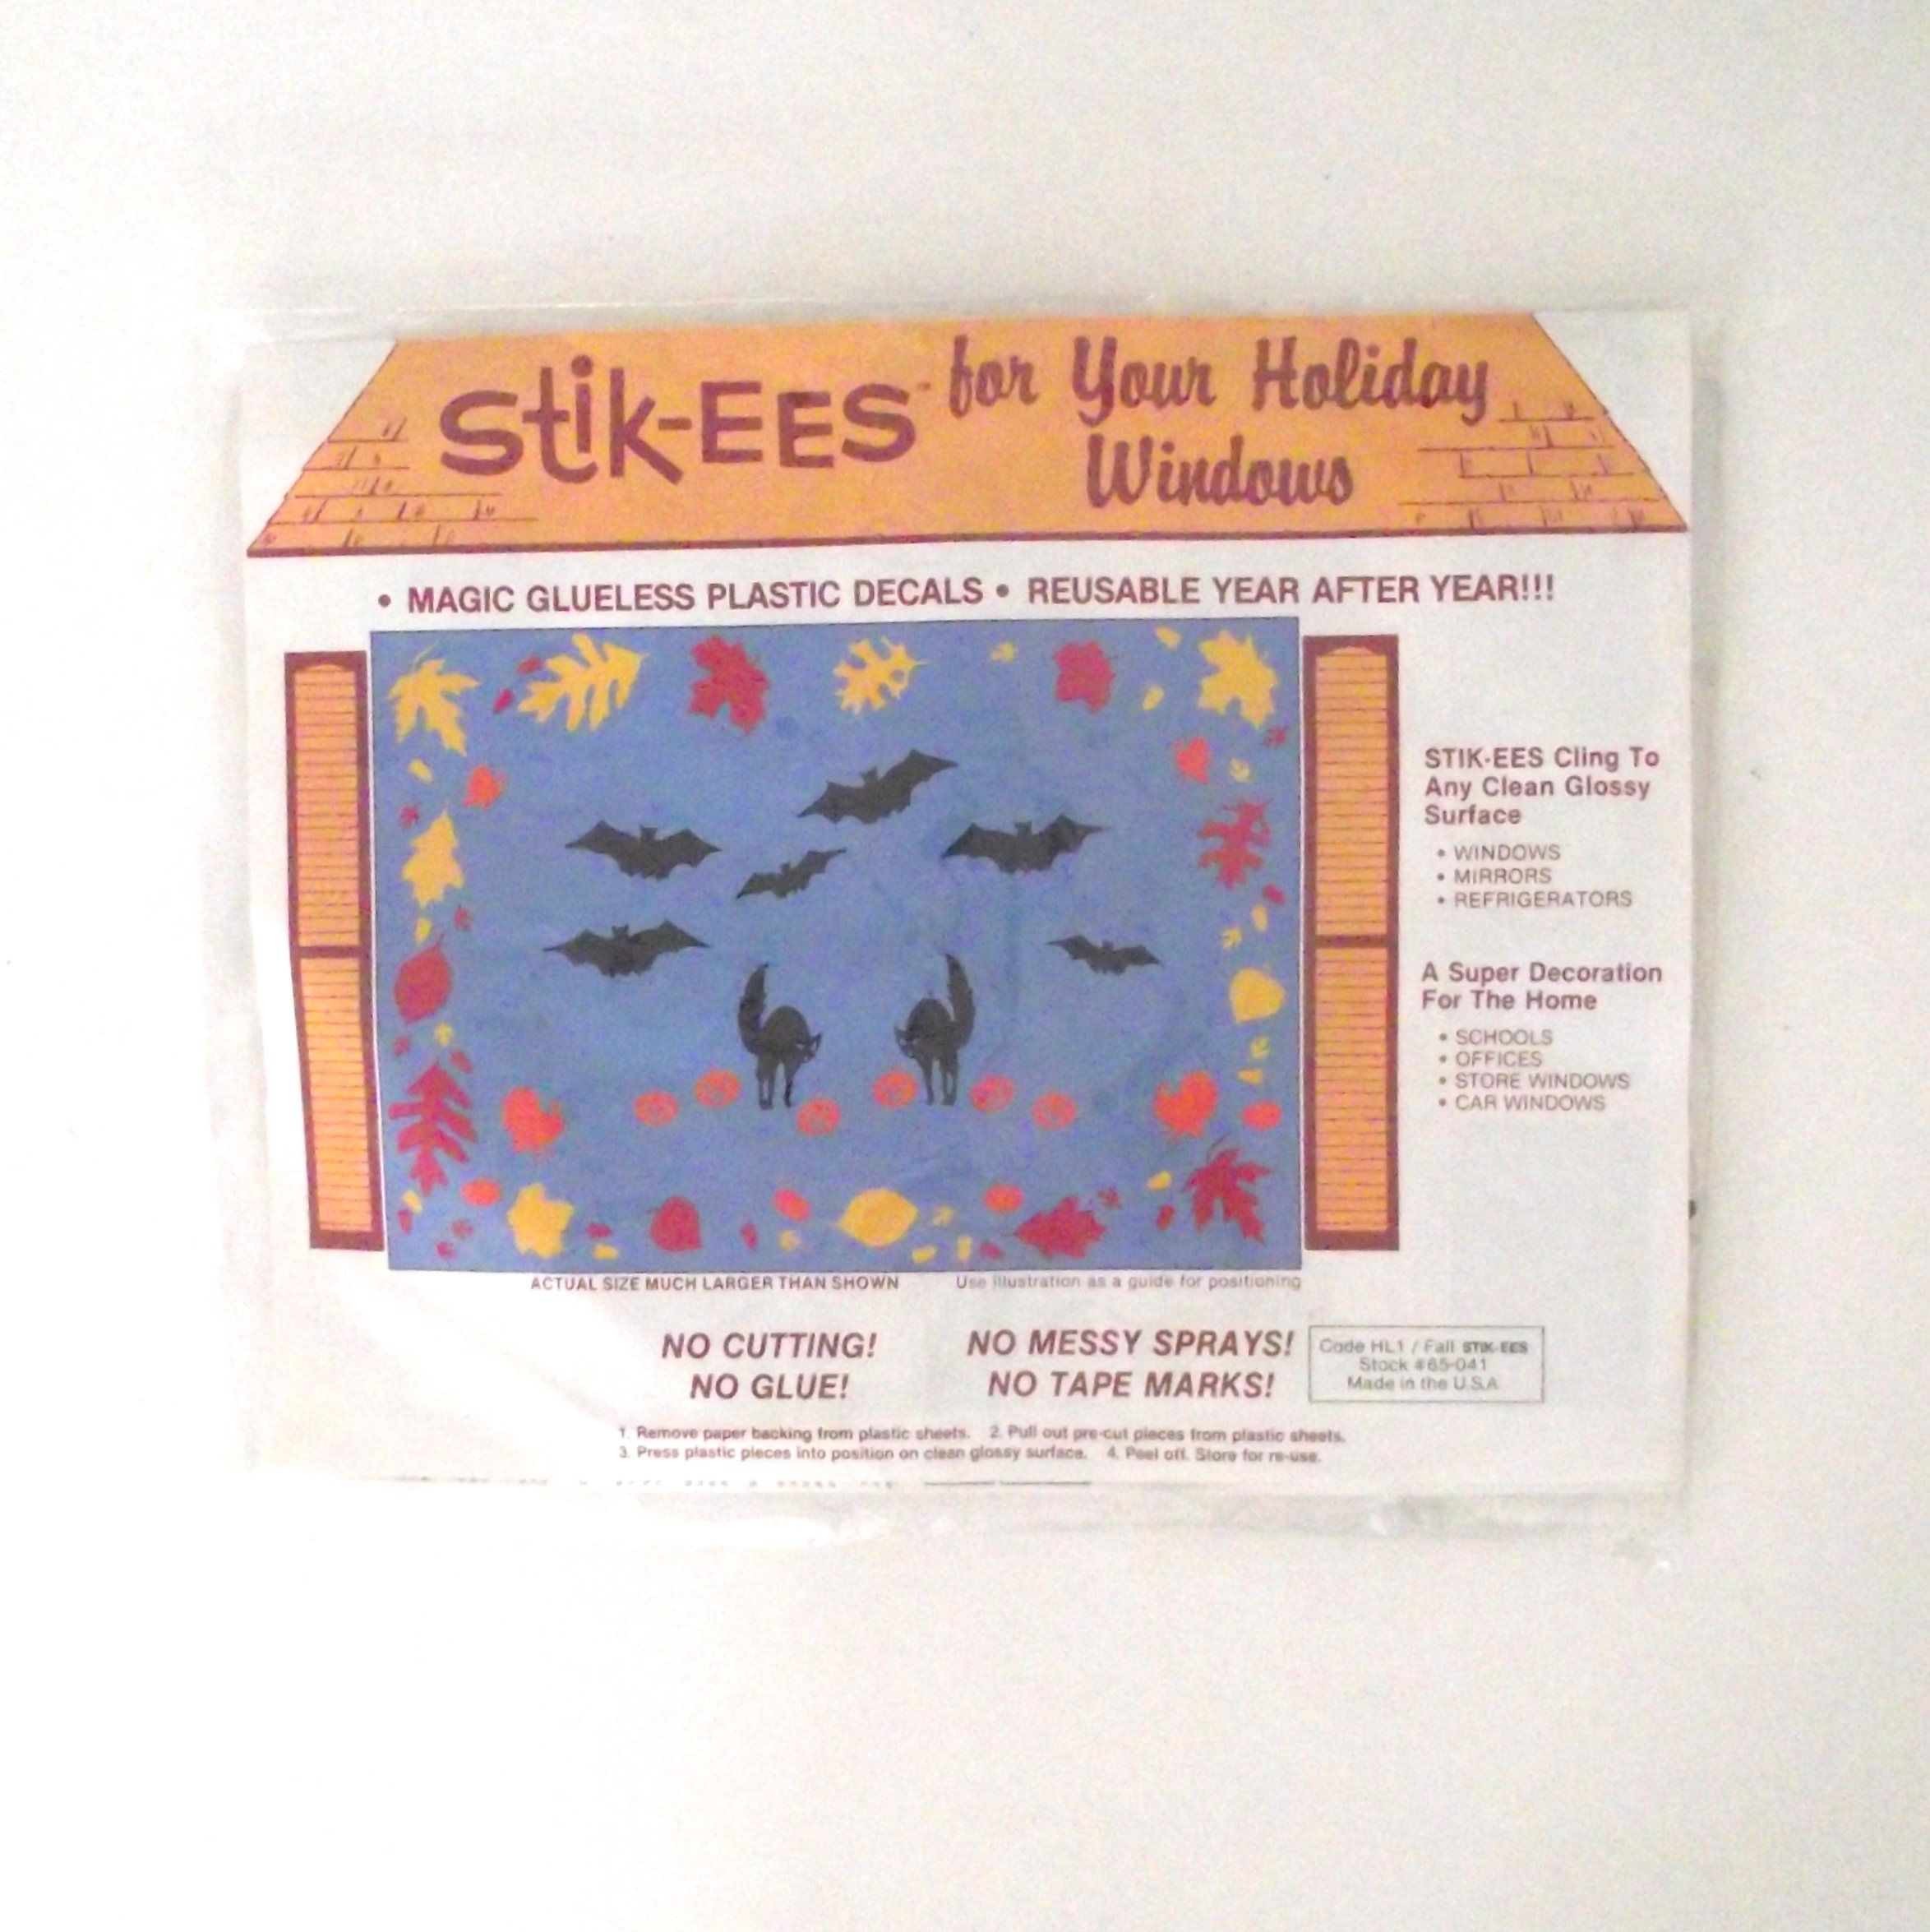 Vintage halloween window decorations - Vintage Halloween And Fall Window Decorations Stik Ees Brand Cling Decorations